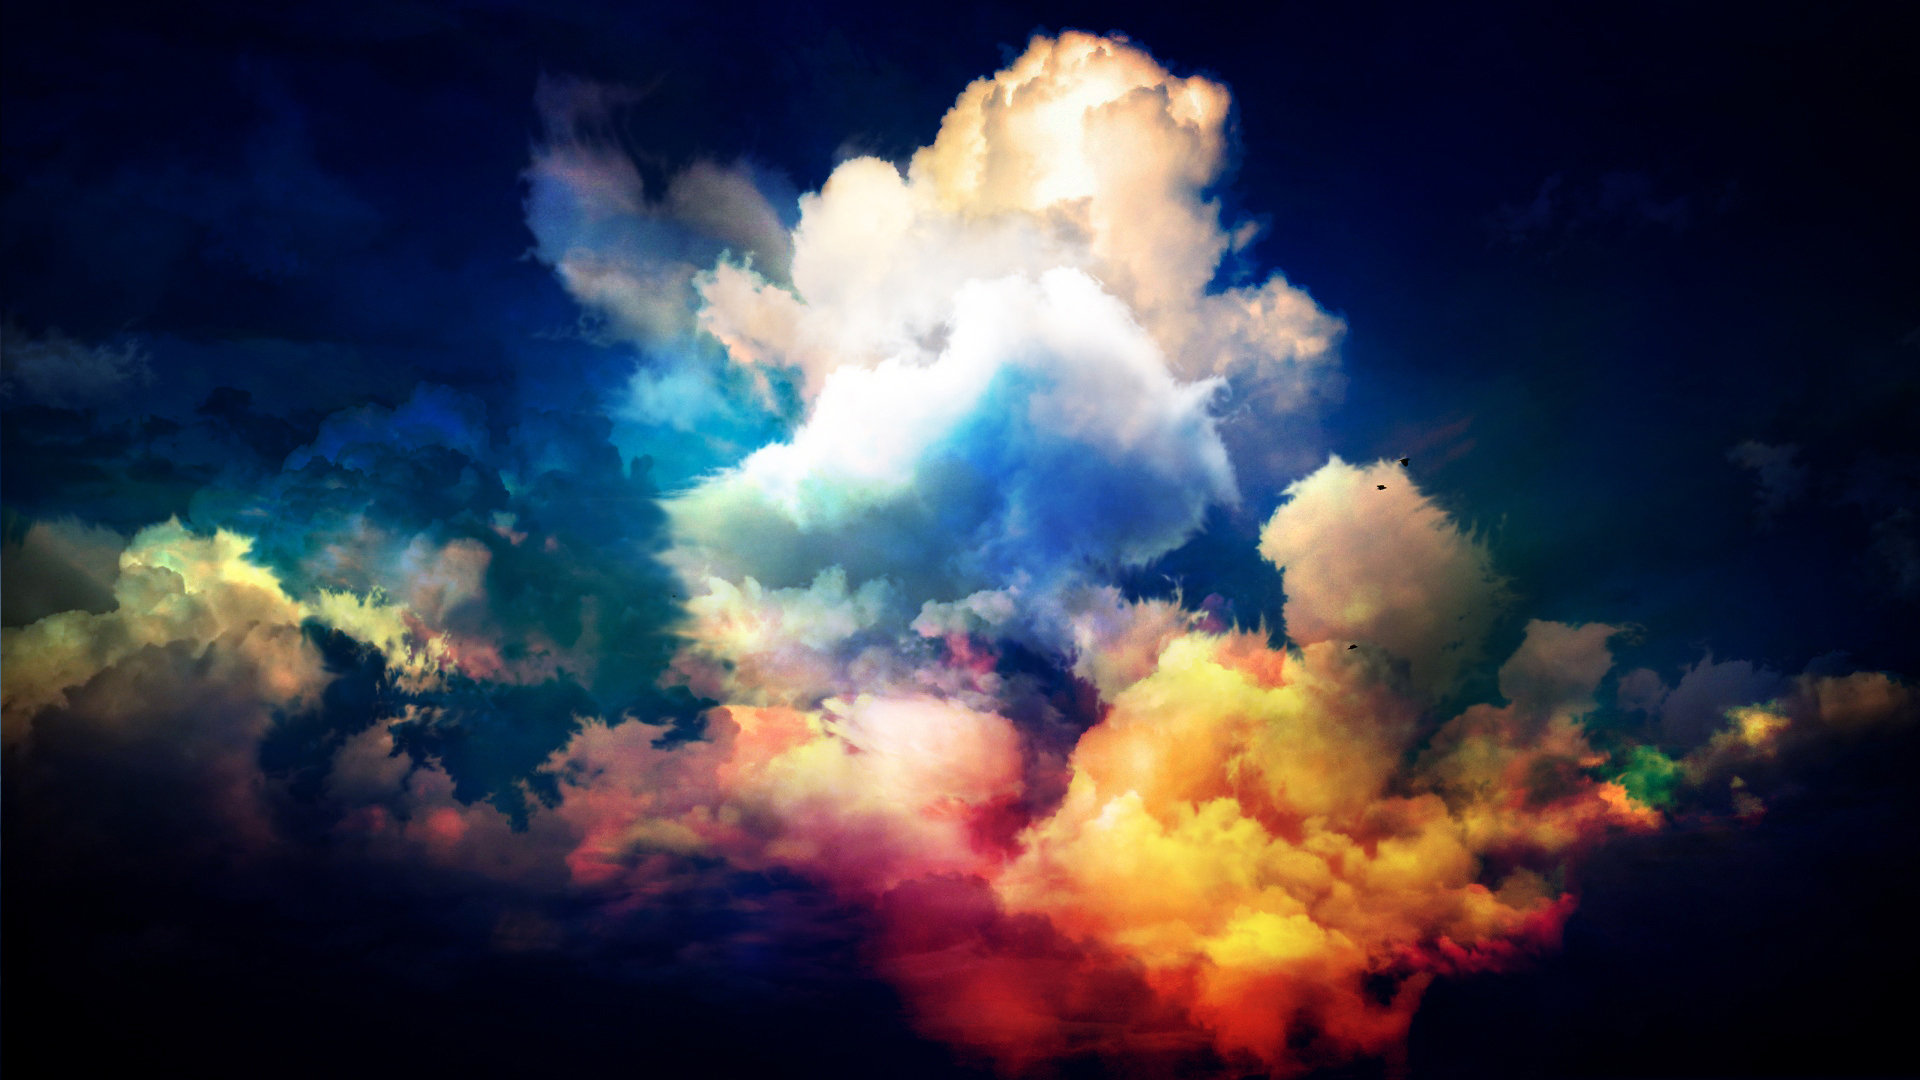 Colourful CLOUDS by THEJOMI